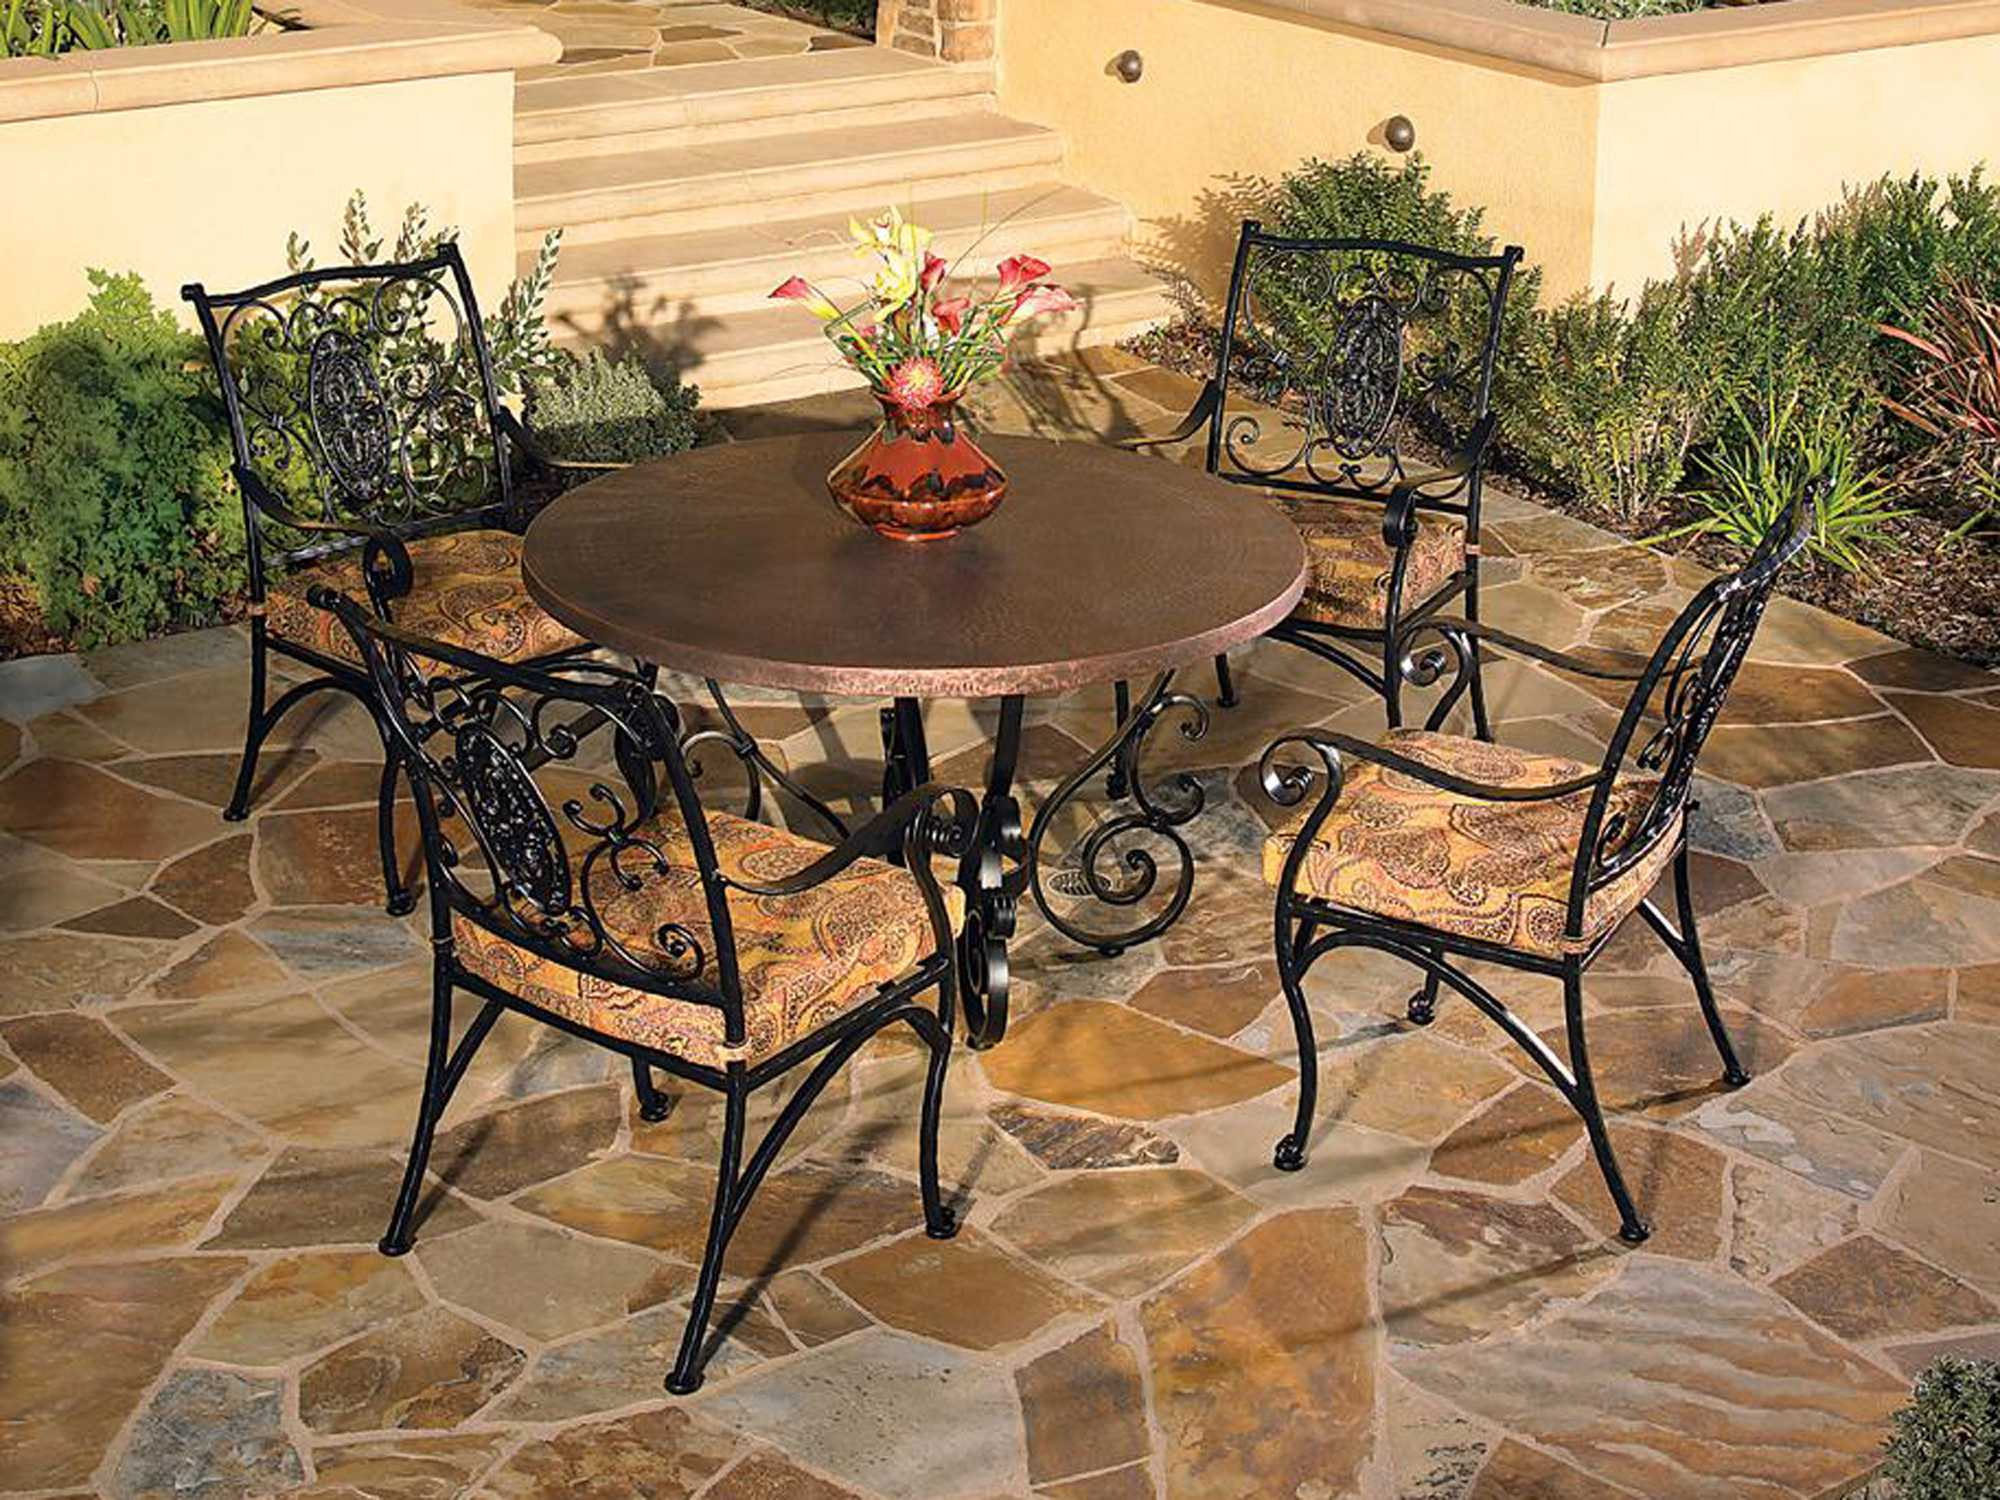 OW Lee San Cristobal Wrought Iron Dining Table Base 6 DT03